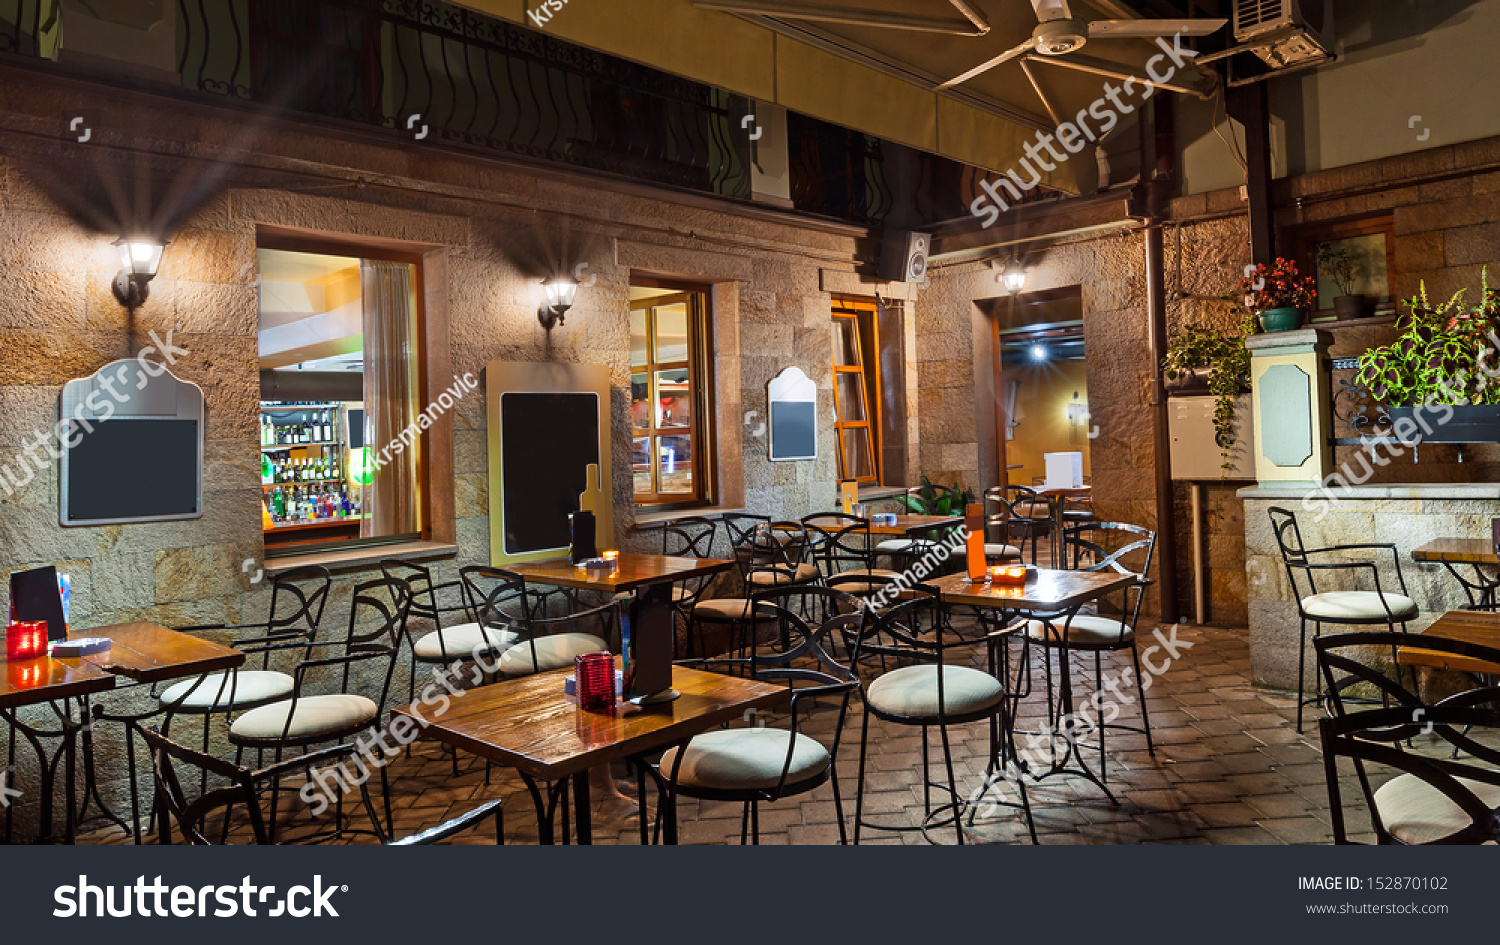 Vintage Look Restaurant Lobby Modern Vintage Look Stock Photo (edit Now) 152870102